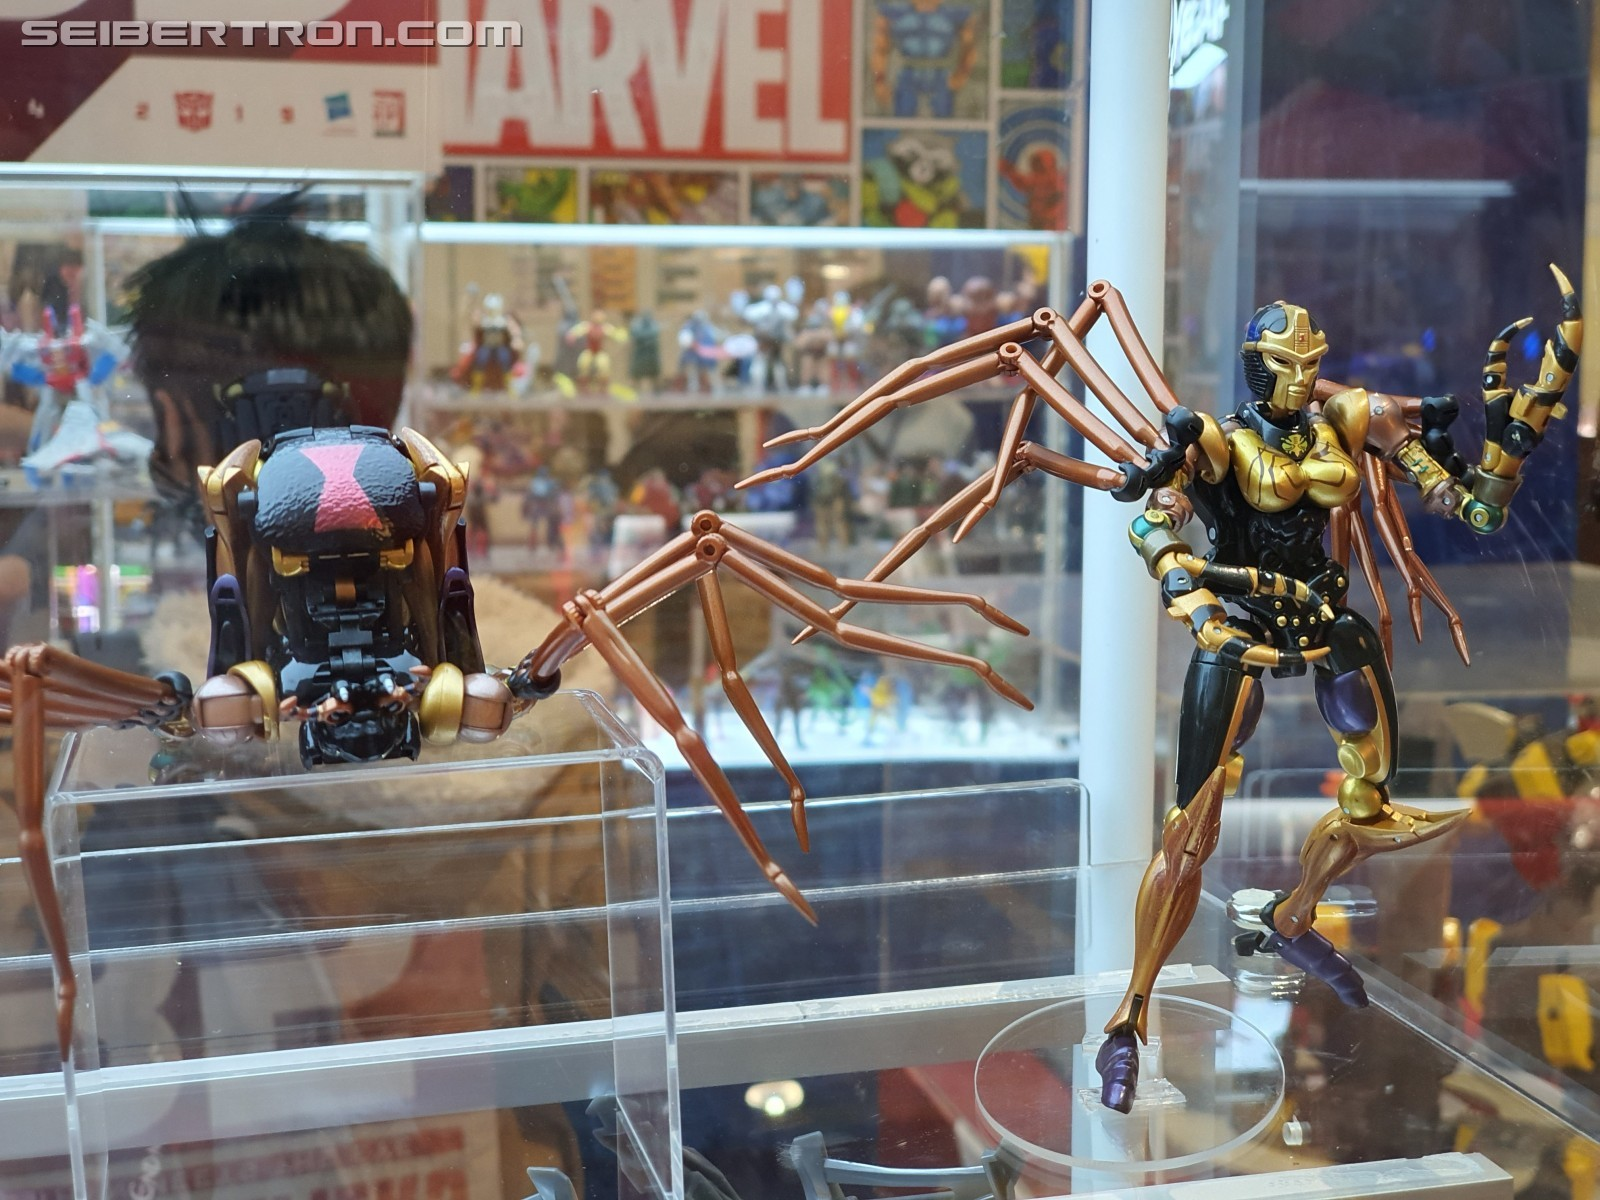 Transformers News: More Images of MP-46 Blackarachnia Showing the Spider Correctly Transformed at Multiple Angles